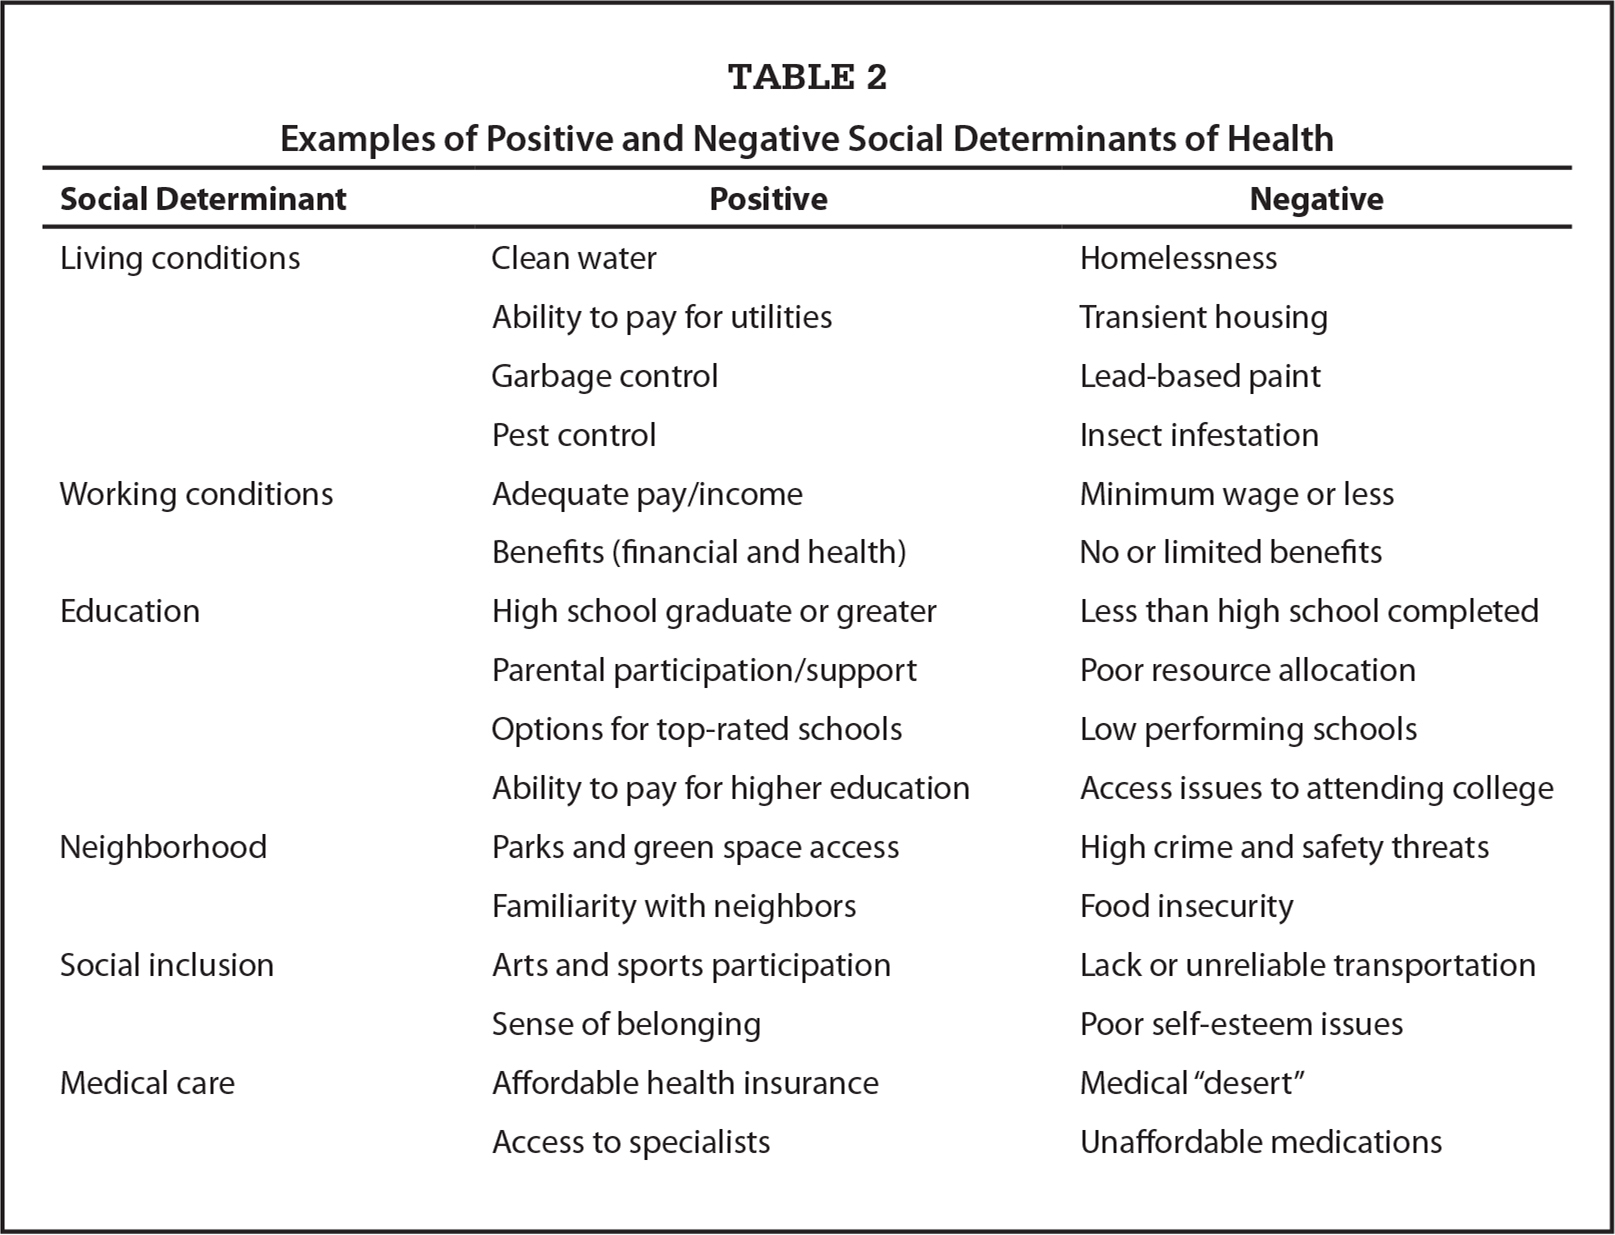 Examples of Positive and Negative Social Determinants of Health